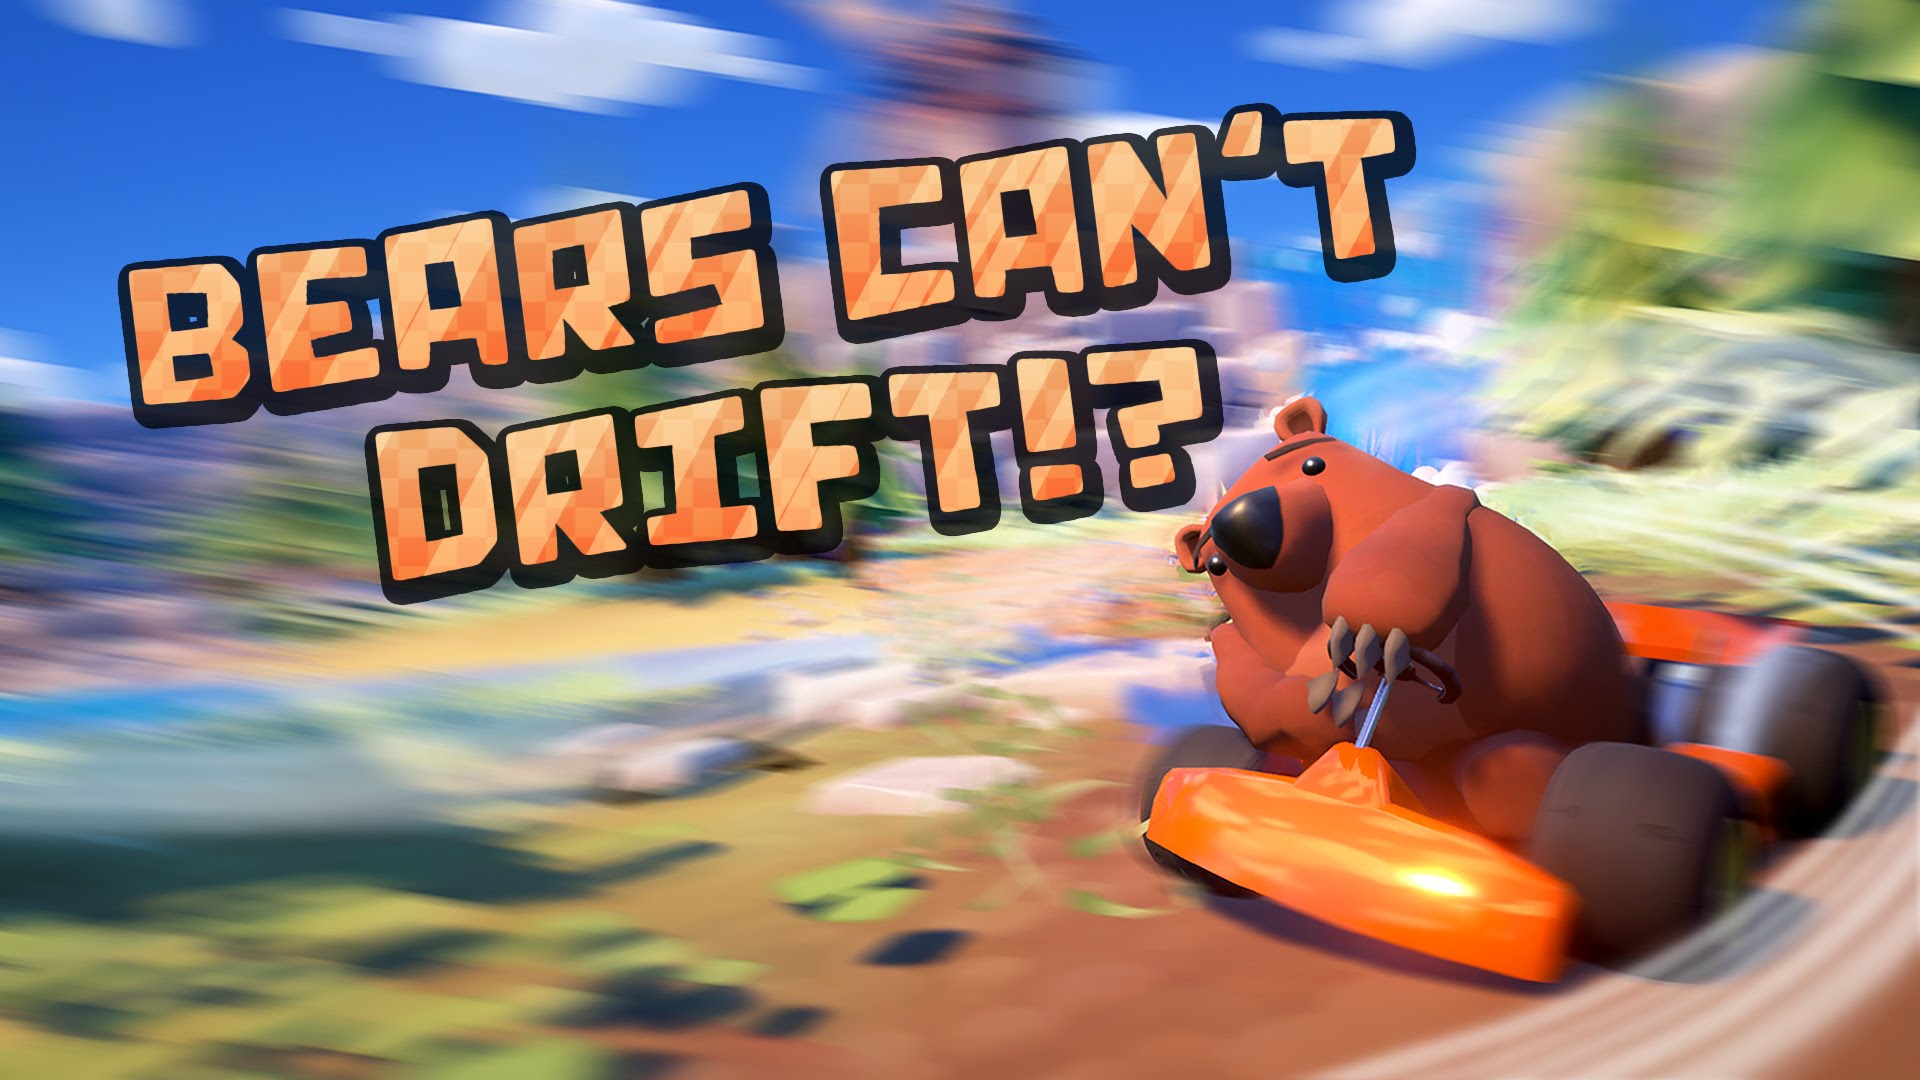 Bears Can't Drift!? main artwork